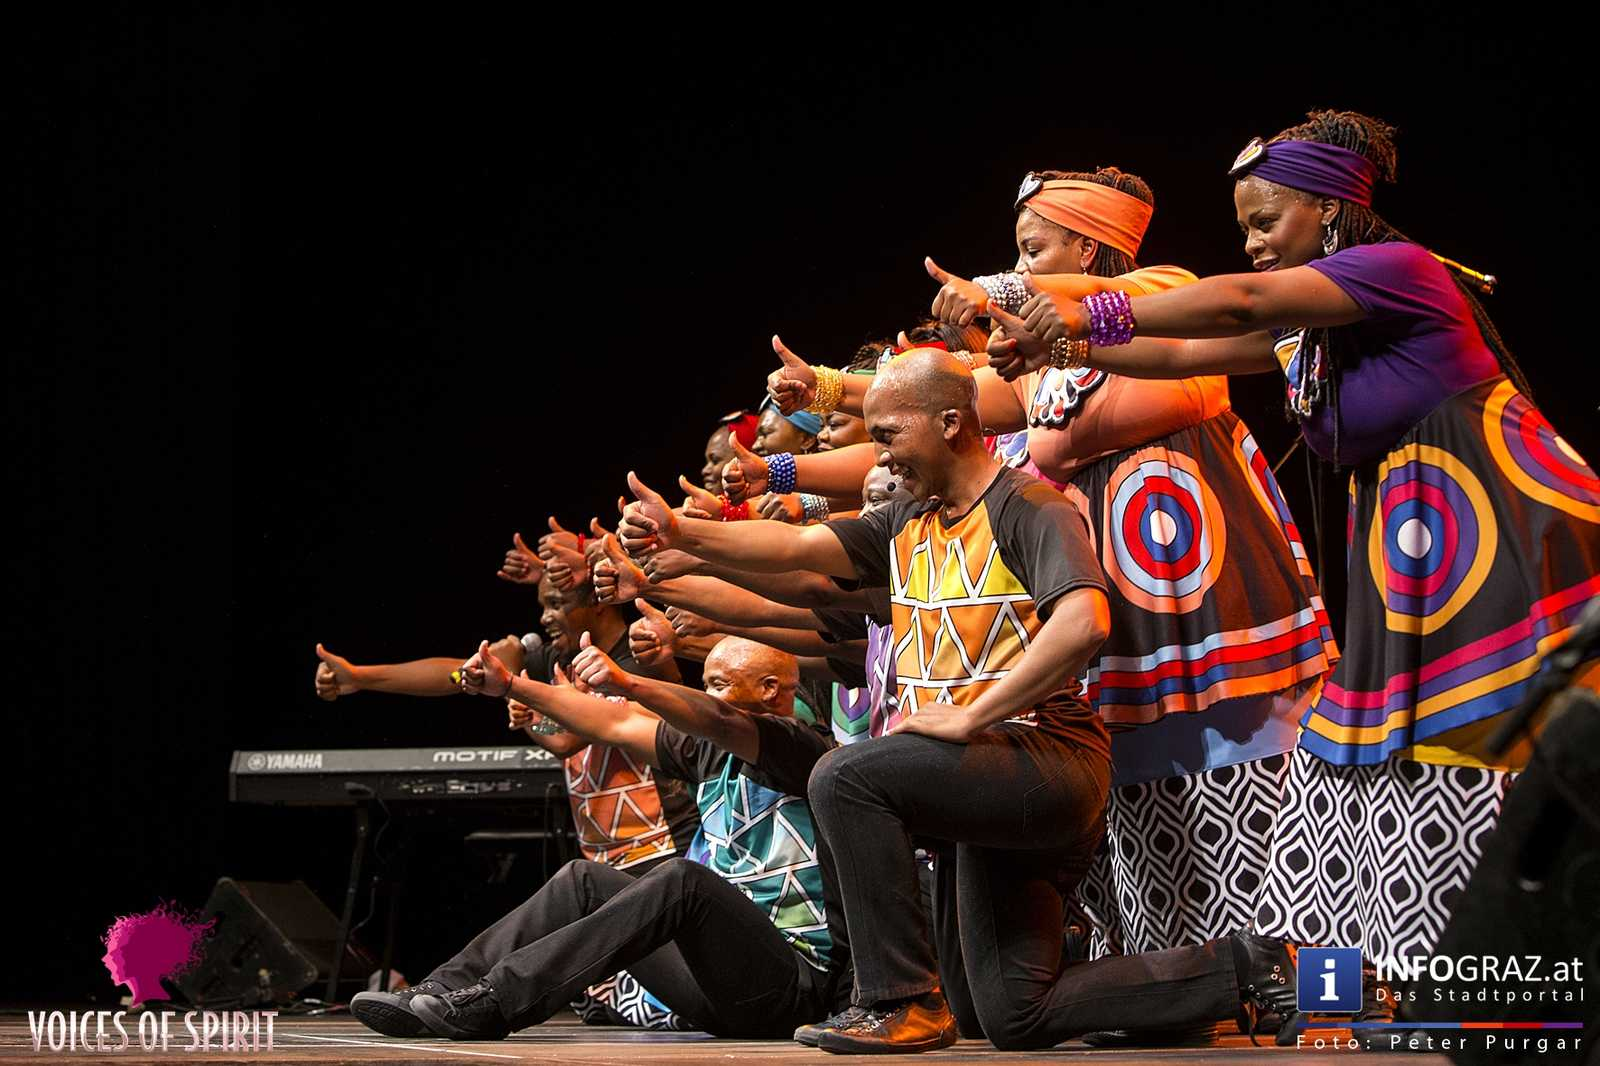 soweto gospel choir internationales chorfestival statdthalle graz voices of spirit eroeffnung festivals 2016 072